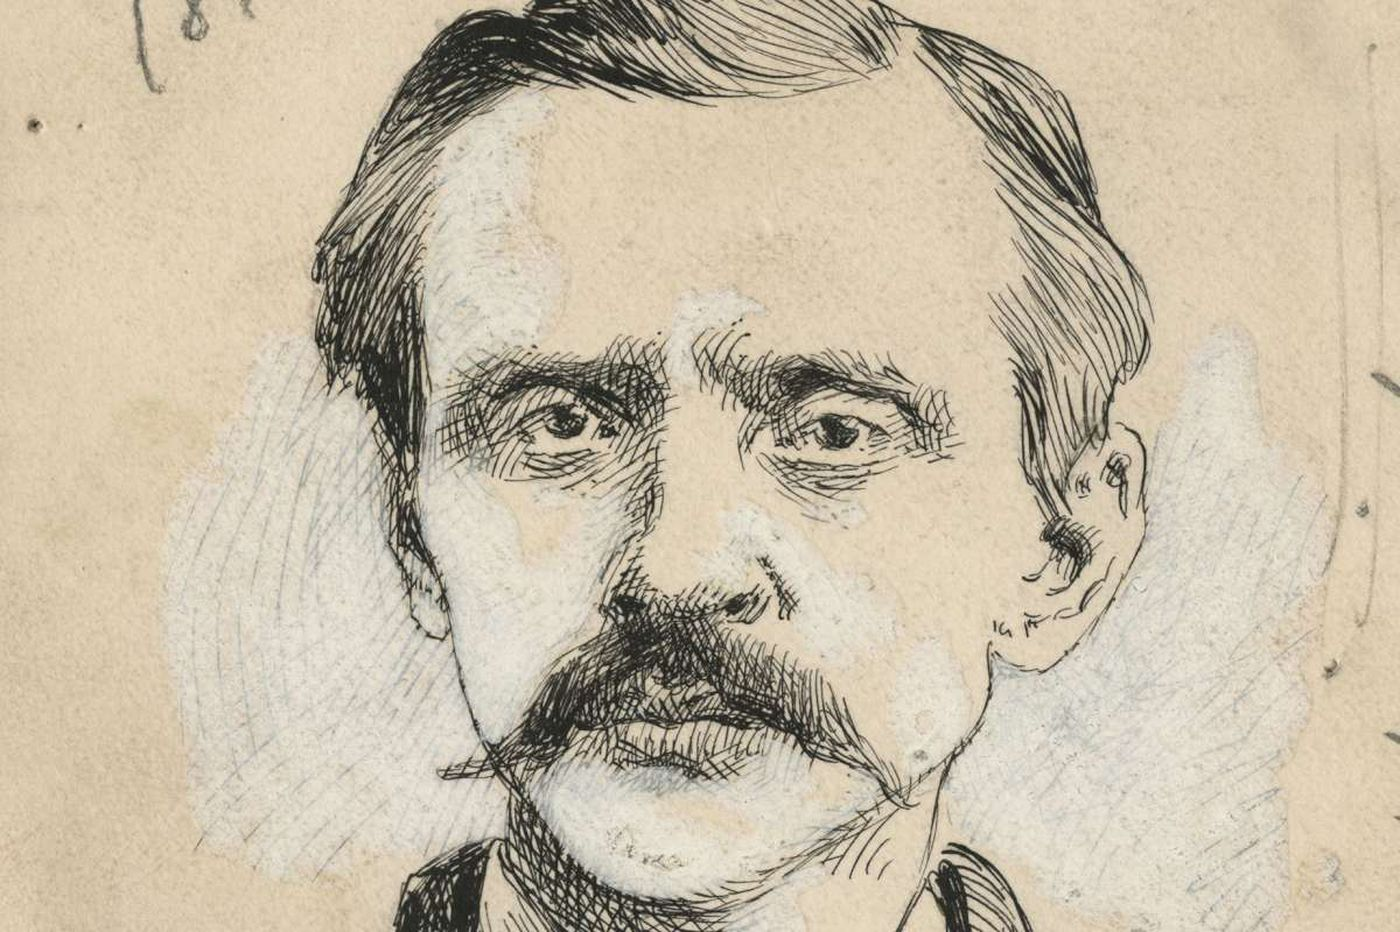 Meet the 19th-century Philly sci-fi writer who was a precursor to H.G. Wells | Philly History